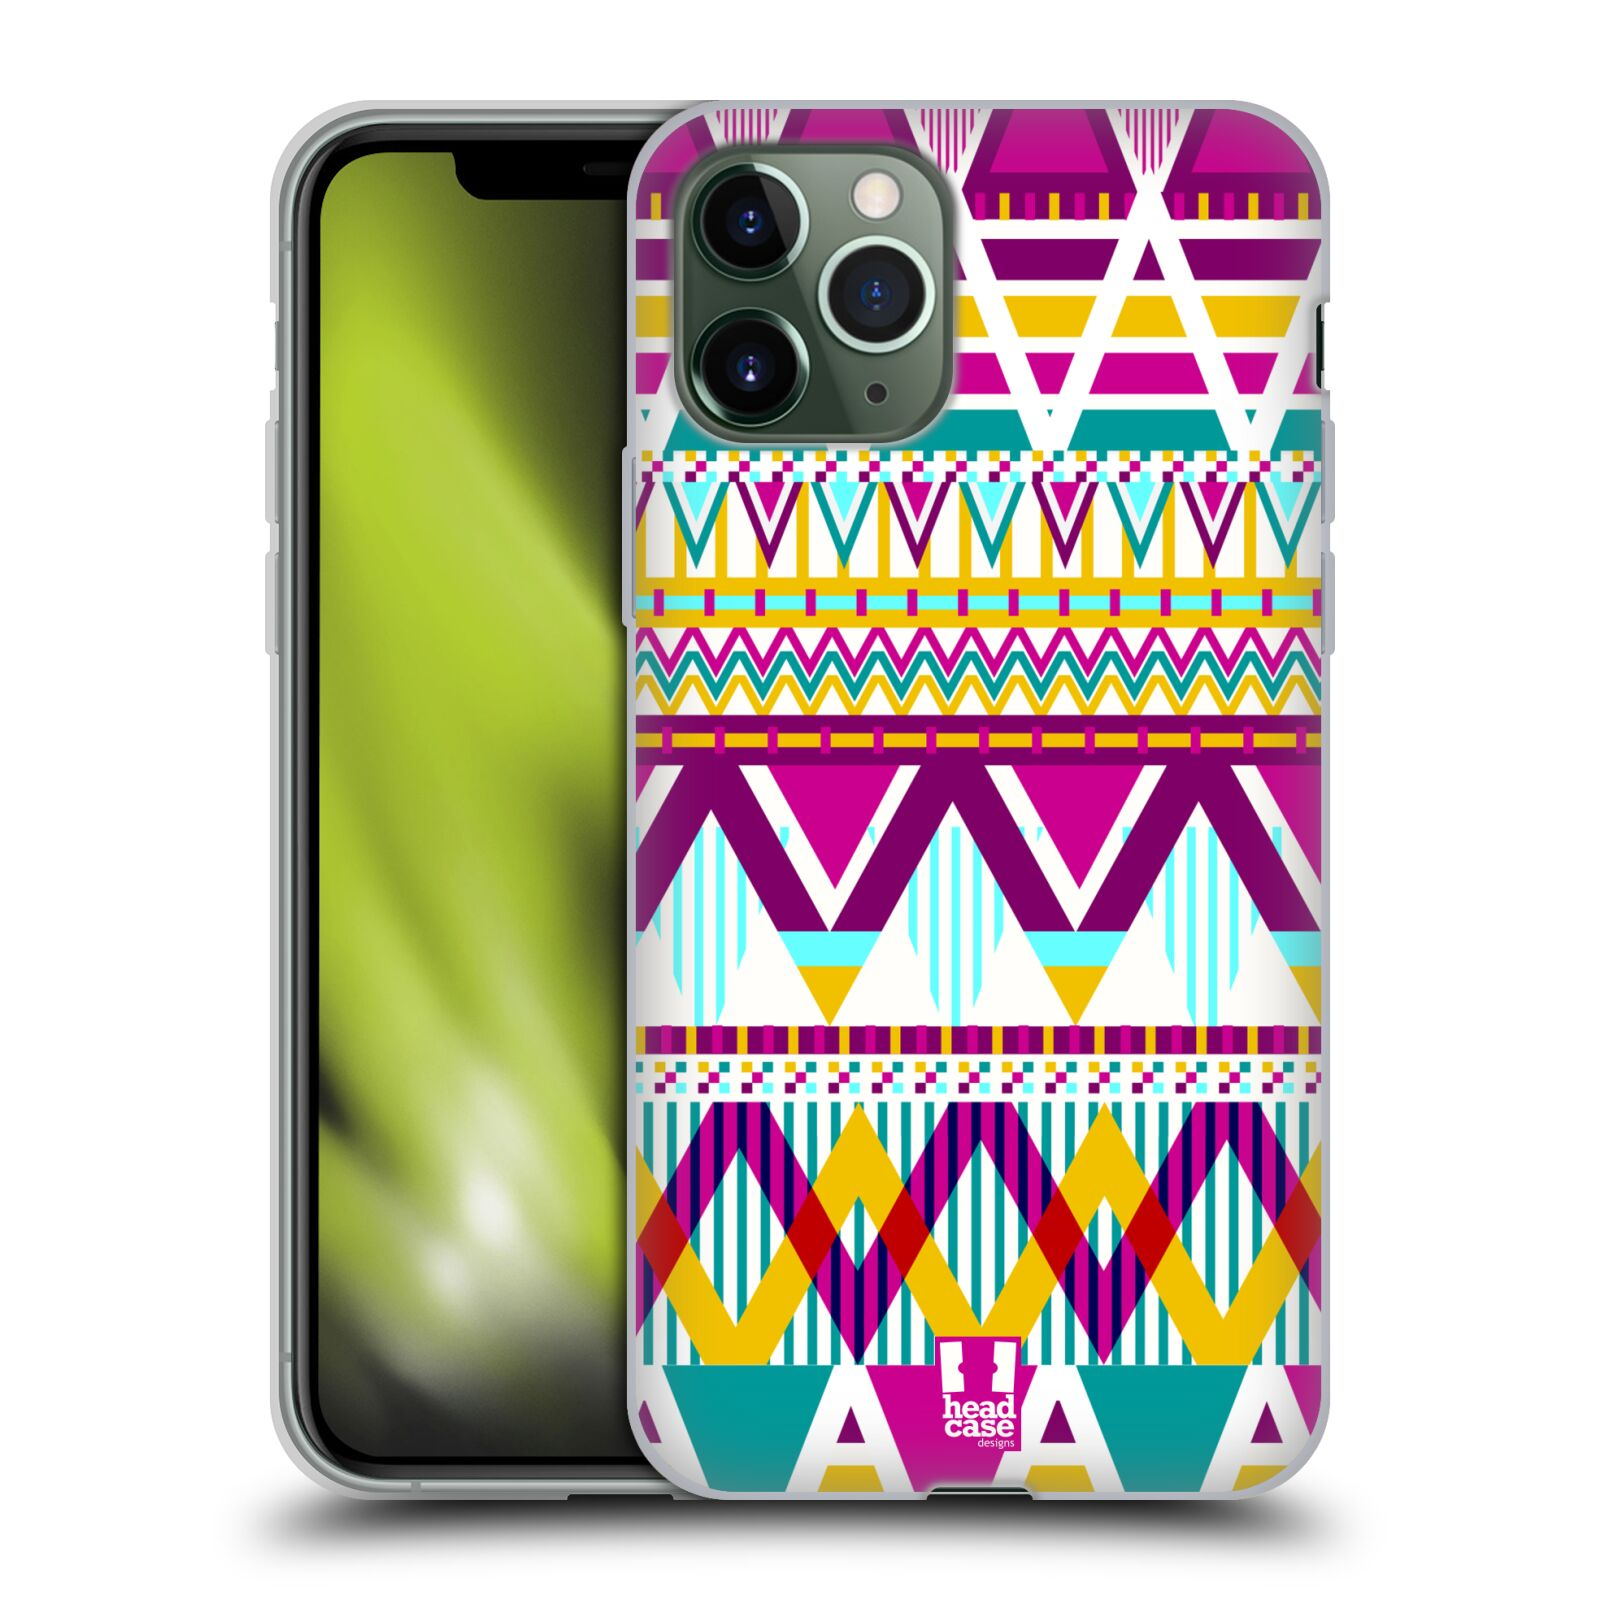 iphone 7 plus kryt gucci | Silikonové pouzdro na mobil Apple iPhone 11 Pro - Head Case - AZTEC SUGARED